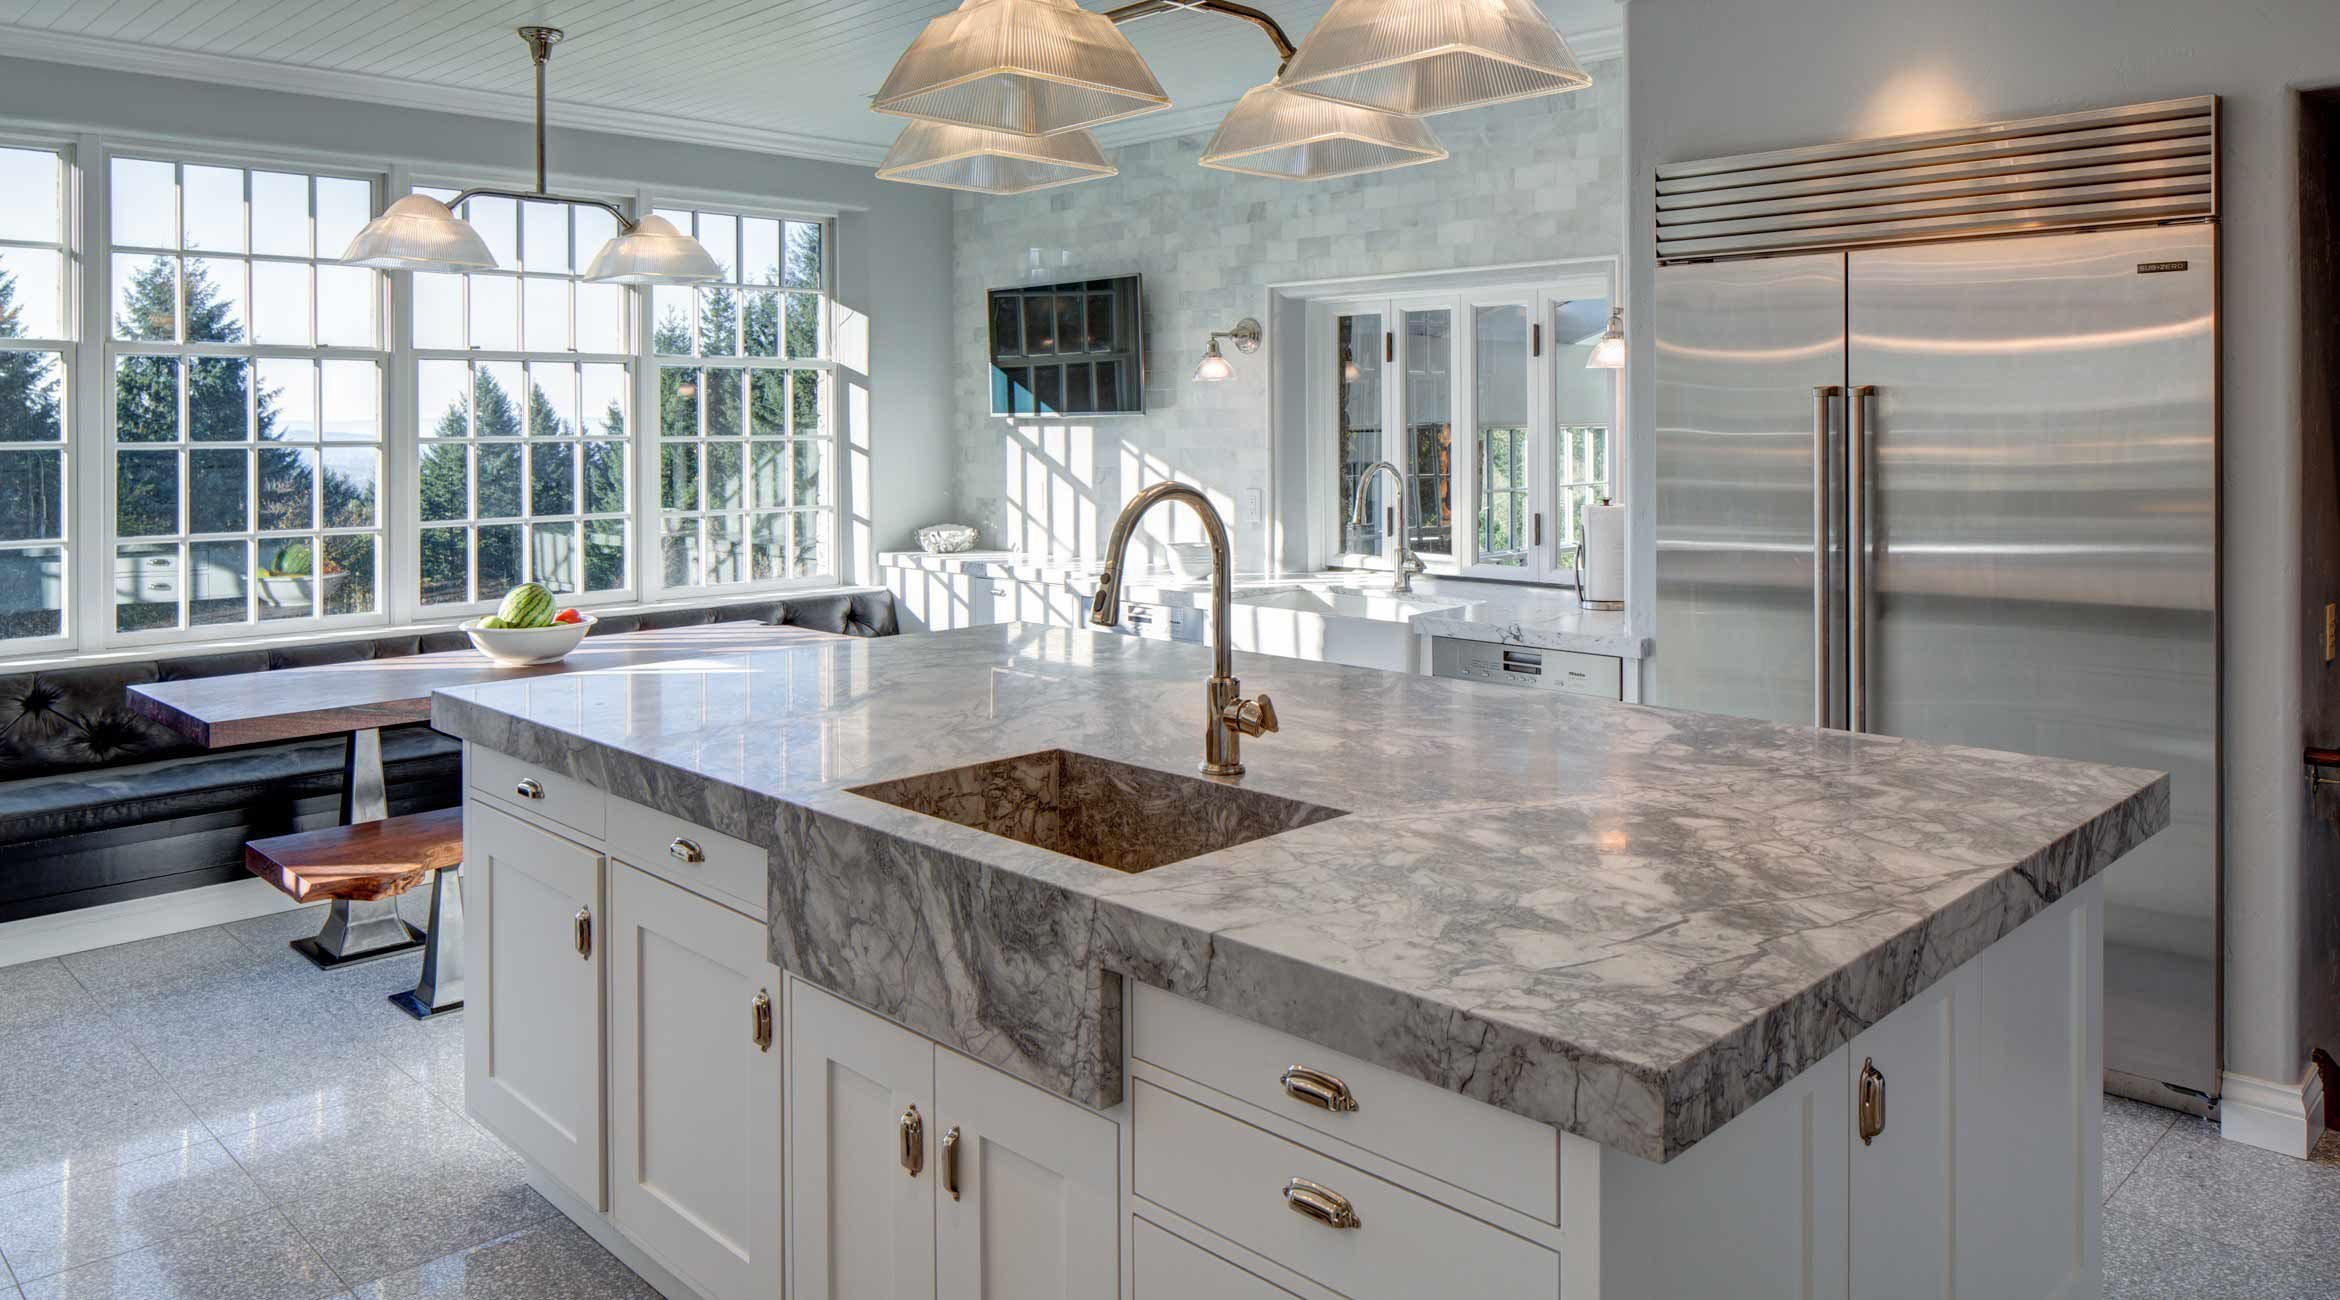 10 renovation trends that will put your home on the cutting edge kitchen remodel app 10 RENOVATION TRENDS THAT WILL PUT YOUR HOME ON THE CUTTING EDGE Tim McDermott